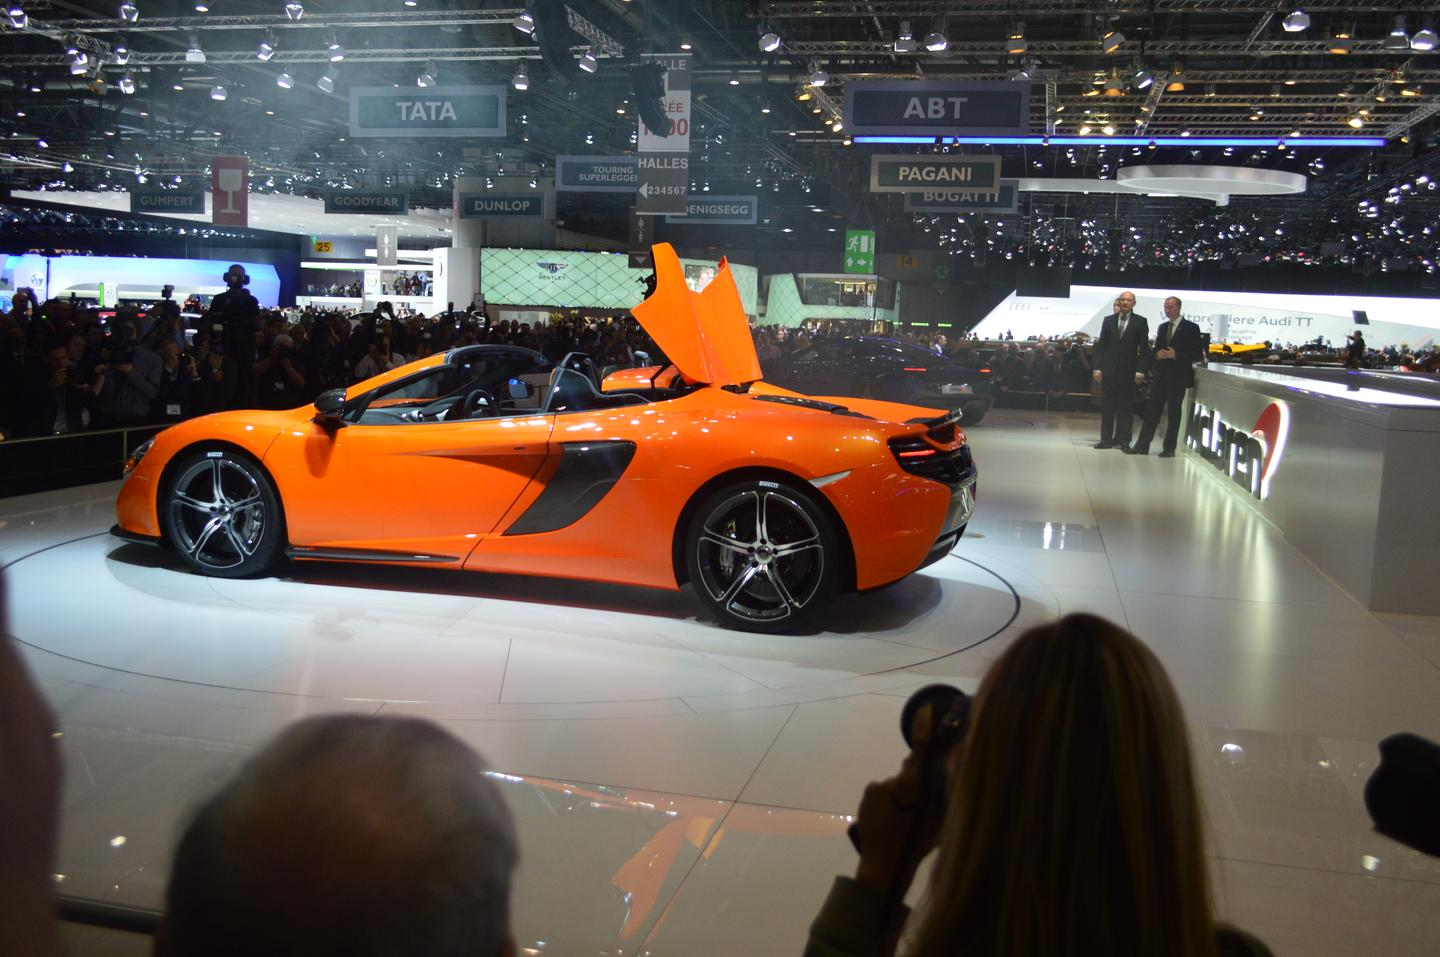 The 650S' revised twin-turbo 3.8 liter V8 is capable of handing over stopwatch times of 3 seconds for a run of 0-100 km/h (62 mph) and a top speed of 329 km/h (204 mph) (Photo: CC Weiss/gizmag.com)